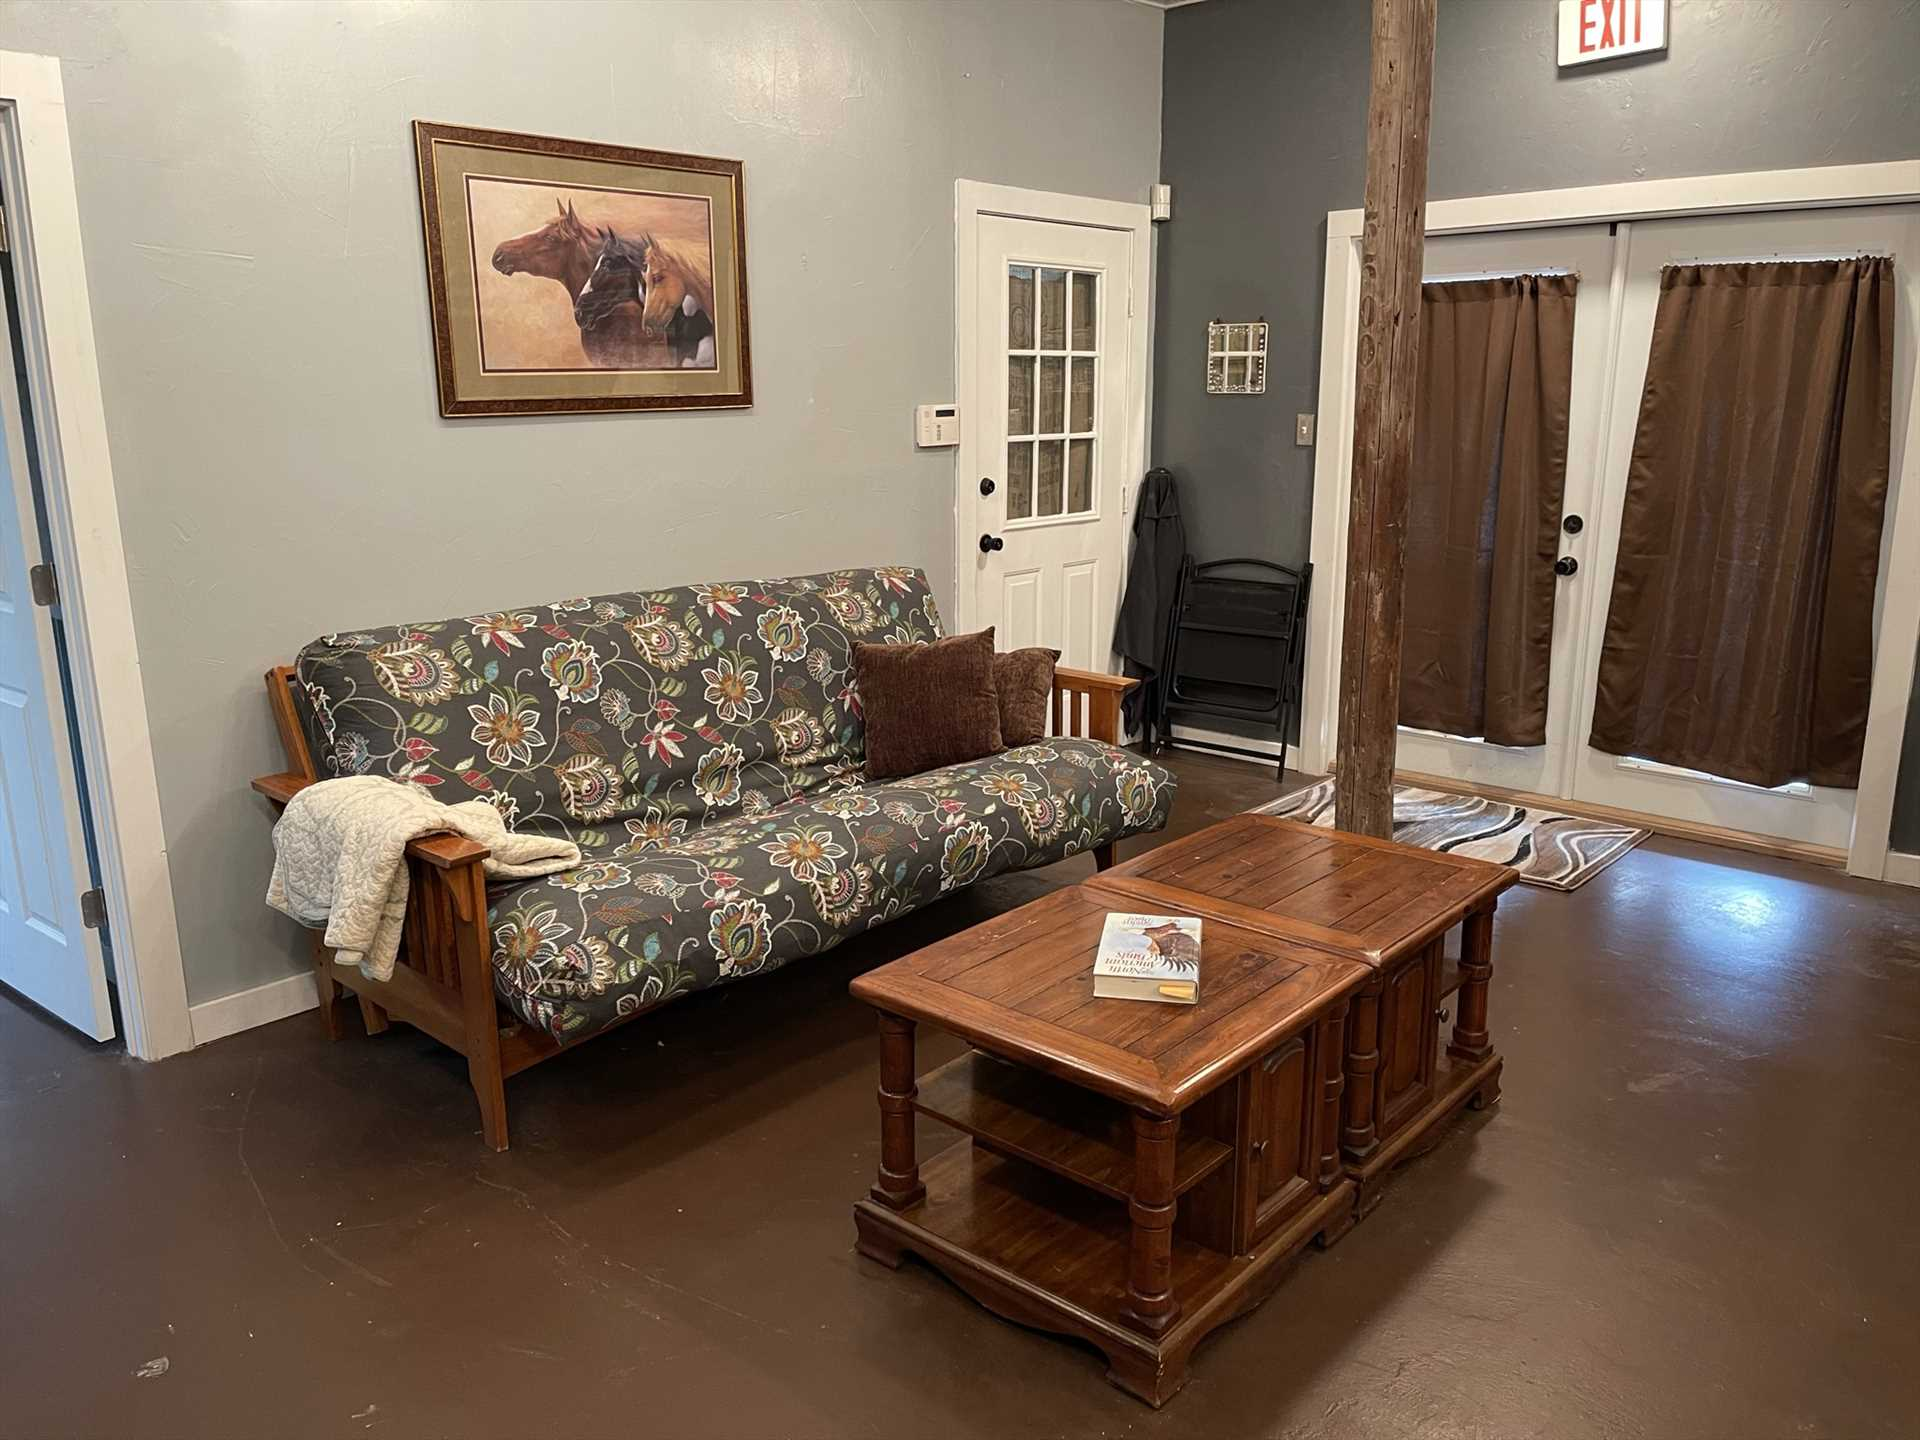 The Retreat features an airy and roomy open floor plan, and it's kept just the way you like it with efficient AC and heating units. Amazon Fire TV and Wifi are also provided!